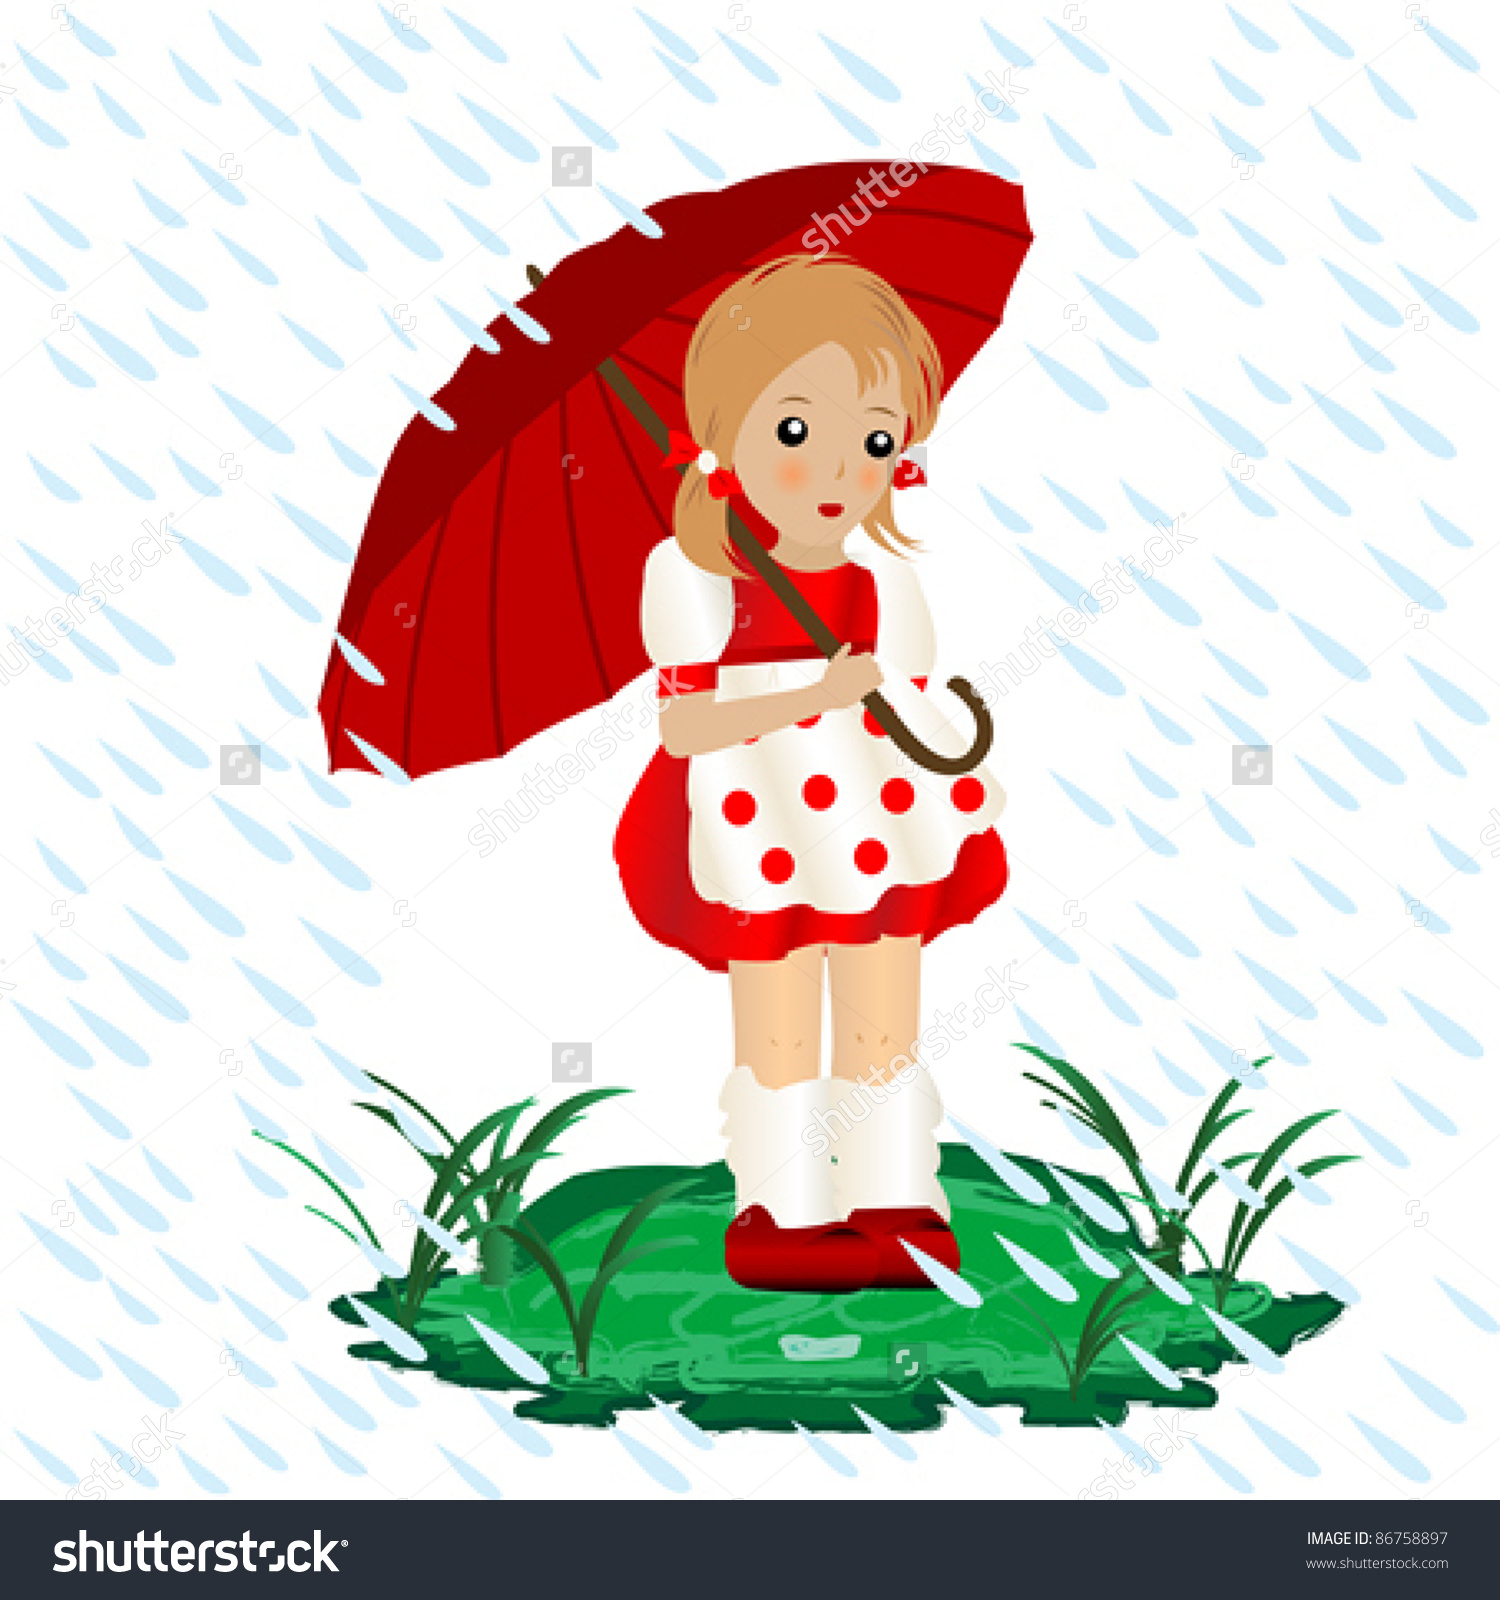 A Little Girl In The Rain With An Umbrella Illustration.